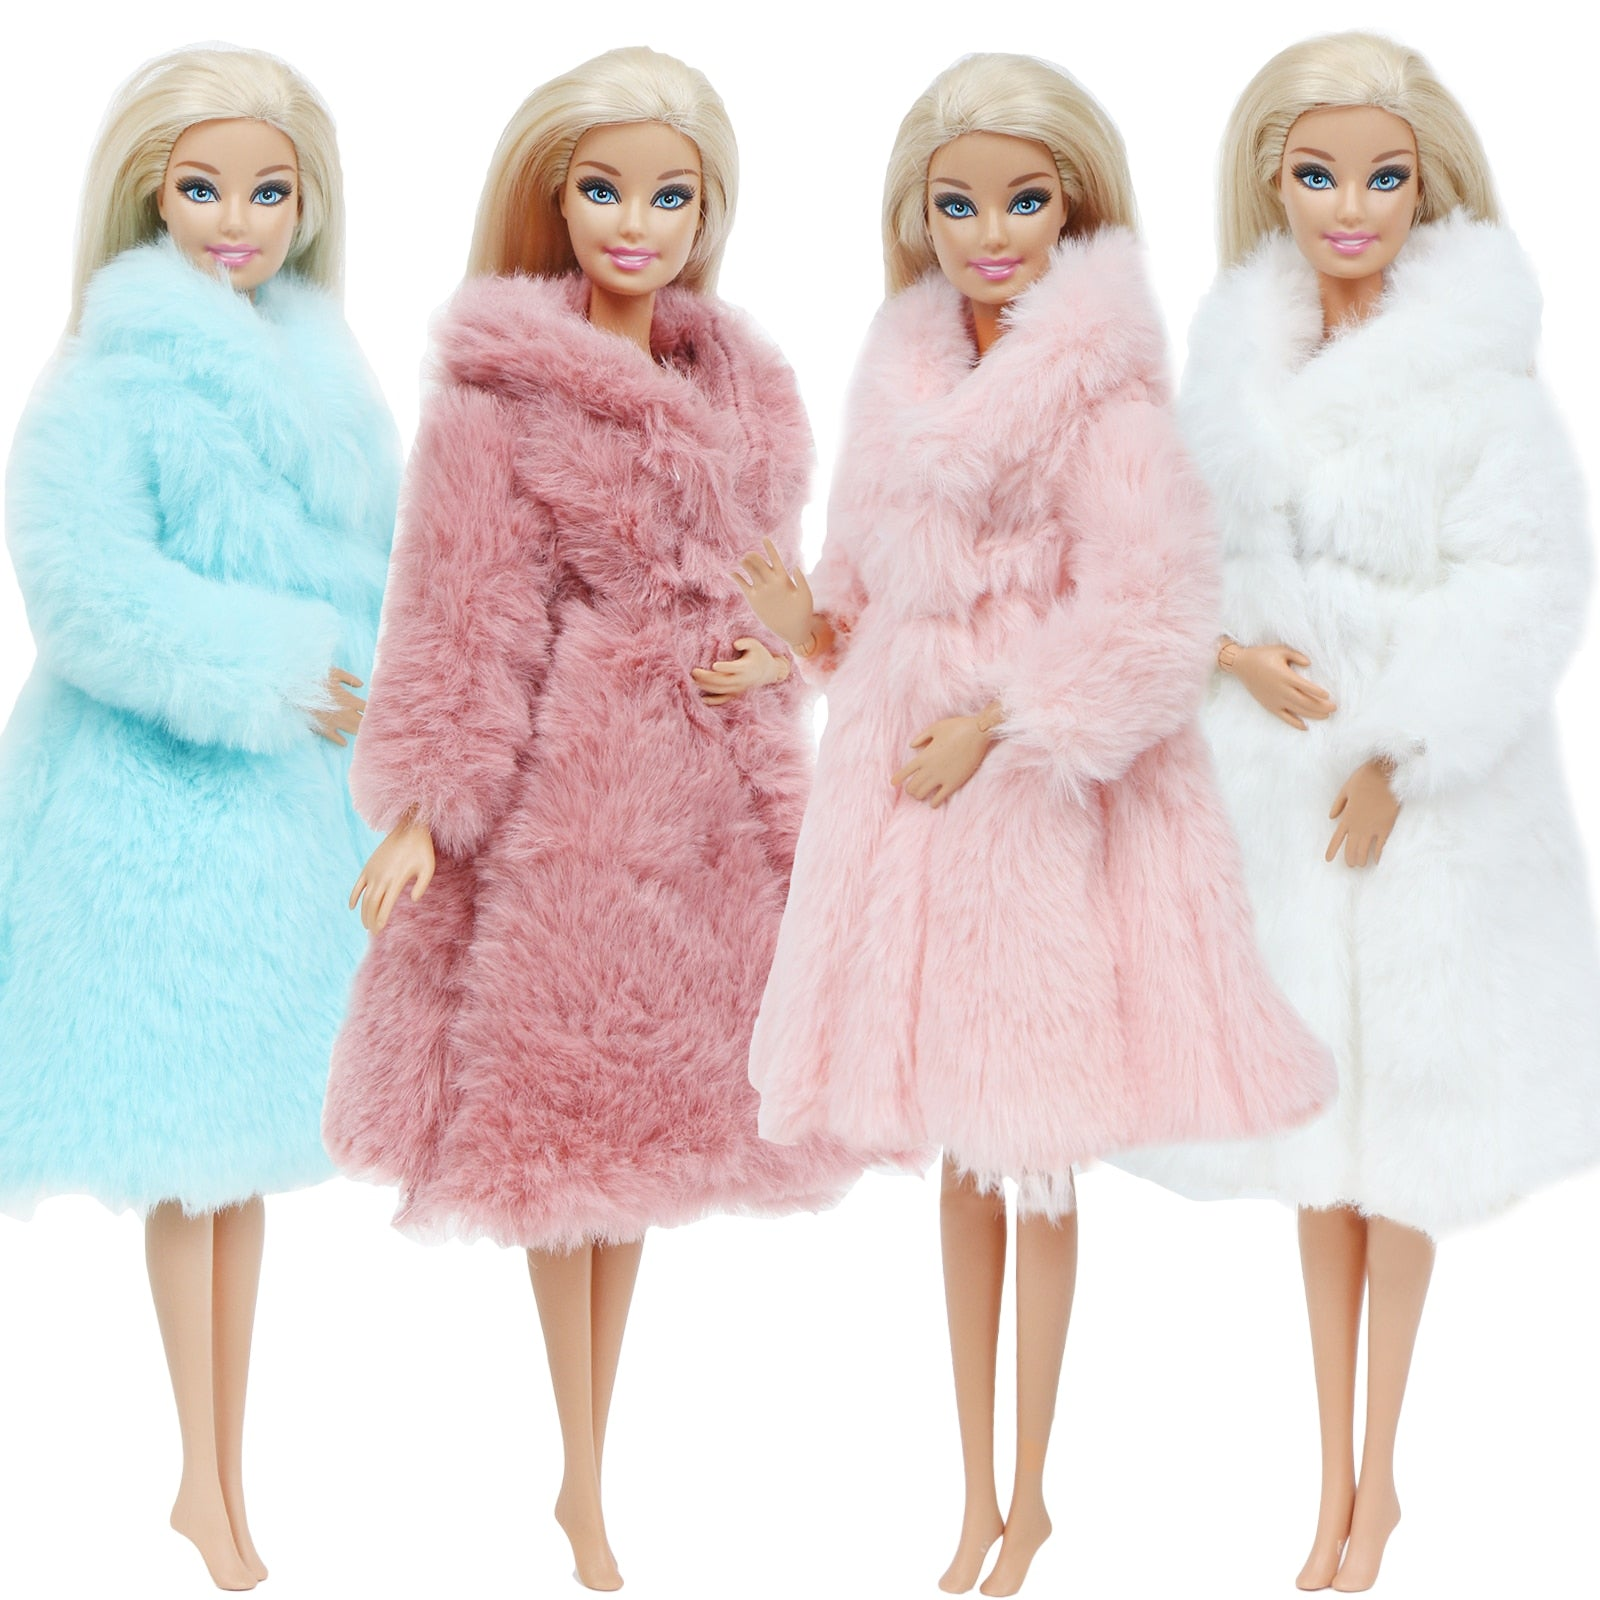 Multicolor 1 Set  Long Sleeve Soft Fur Coat Tops Dress Winter Warm Casual Wear Accessories Clothes for Barbie Doll Kids Toy